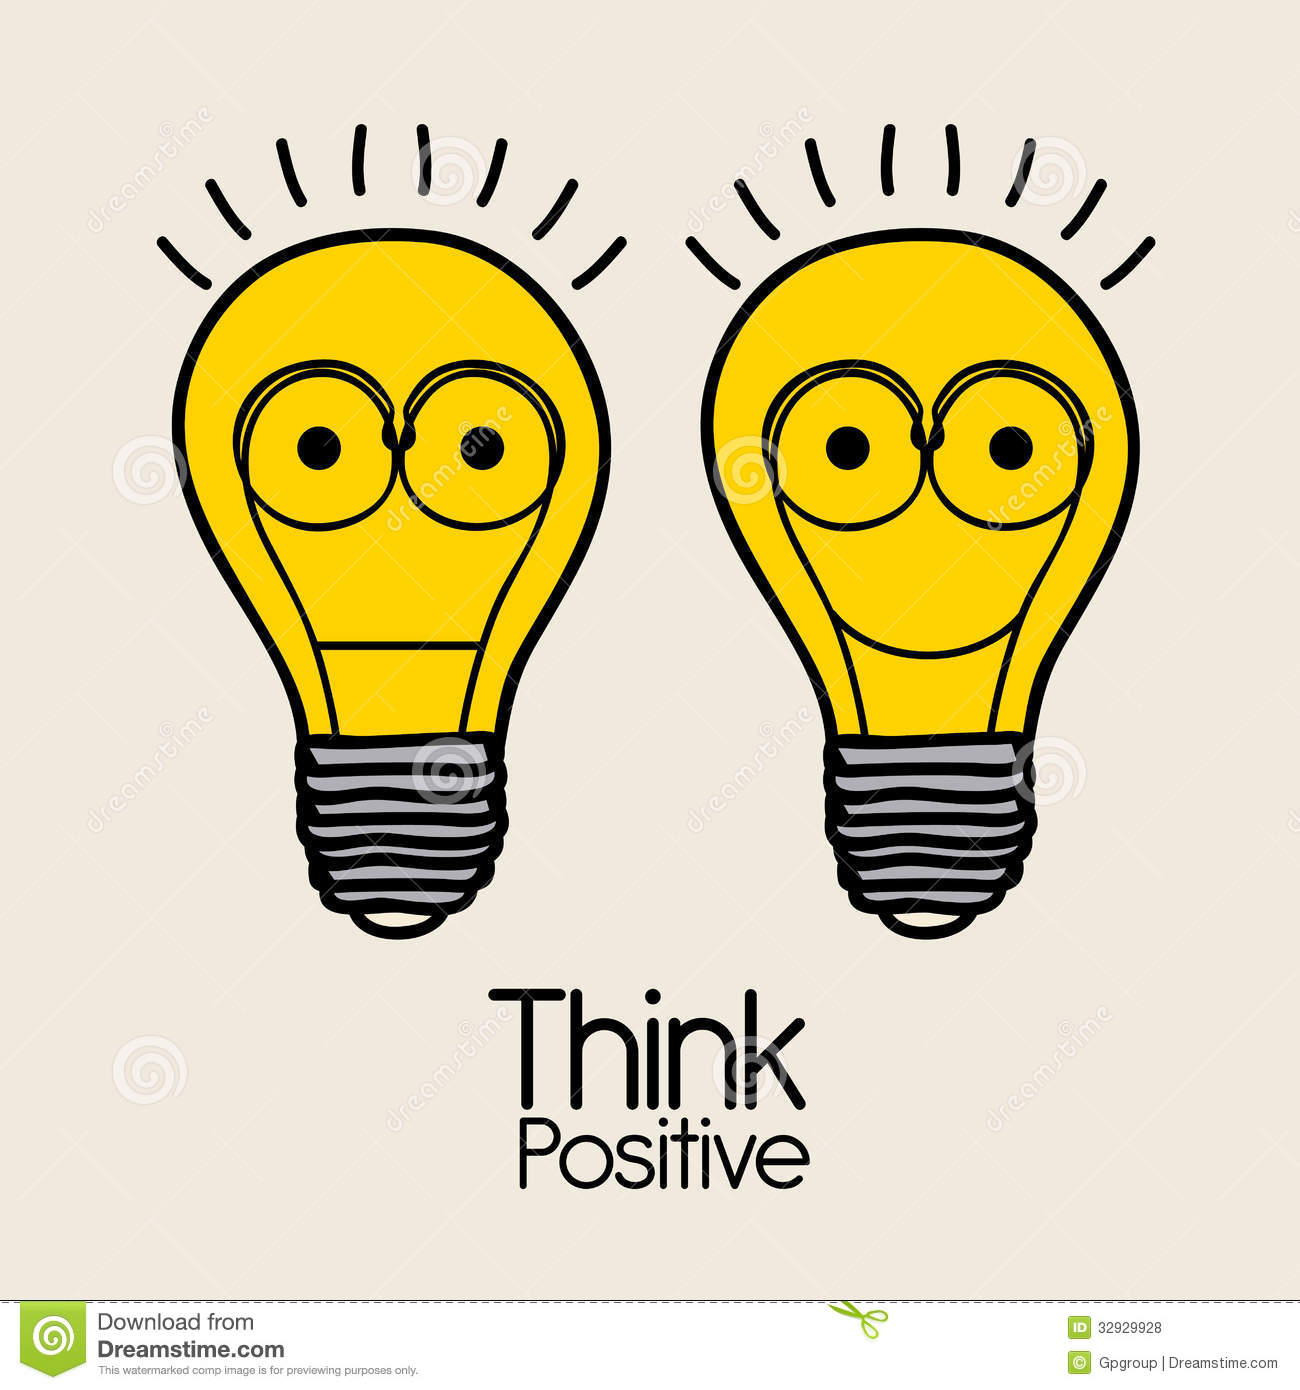 How to think positive when feeling down